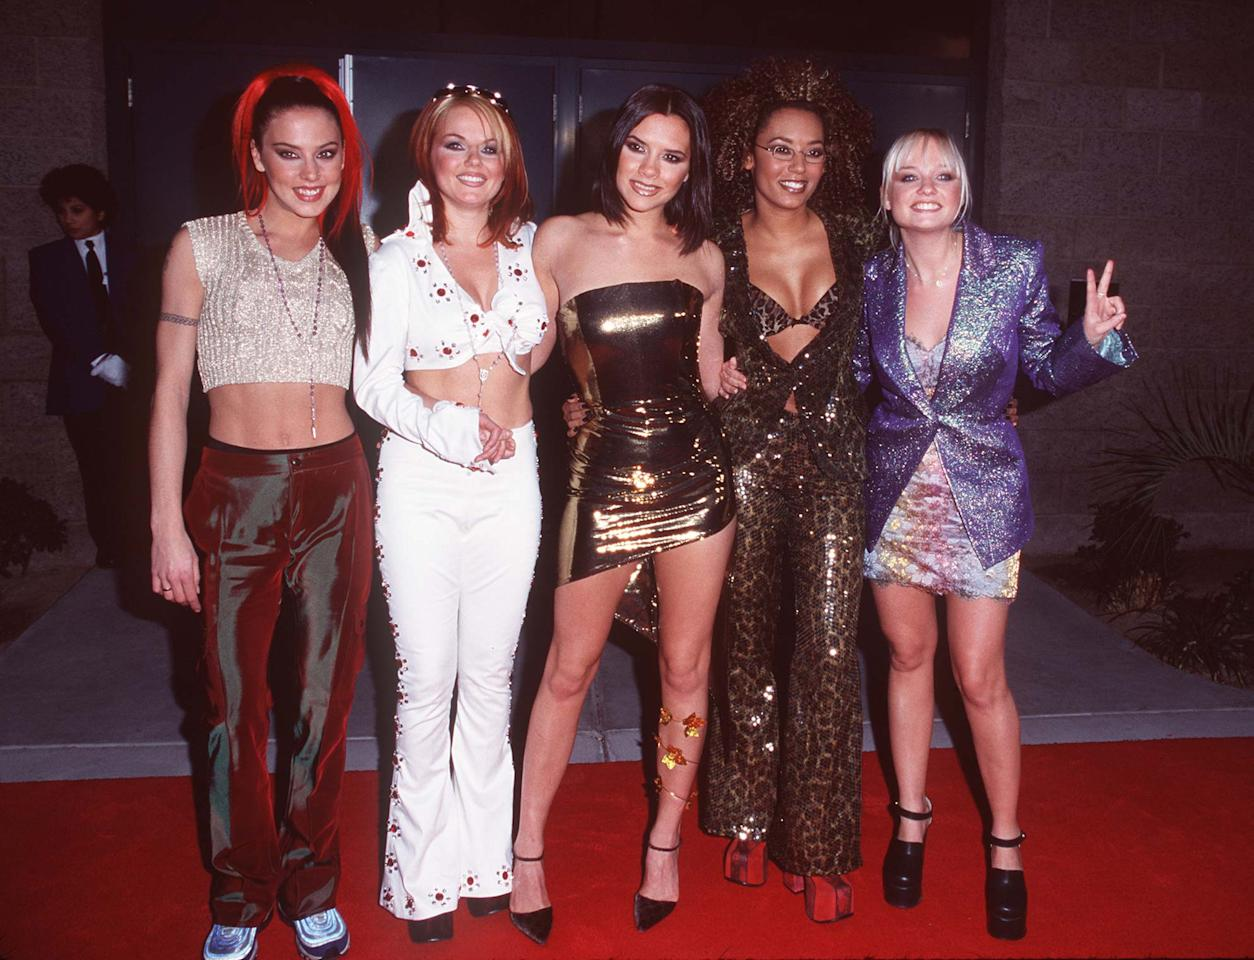 More tour dates for Spice Girls, but still no Irish dates